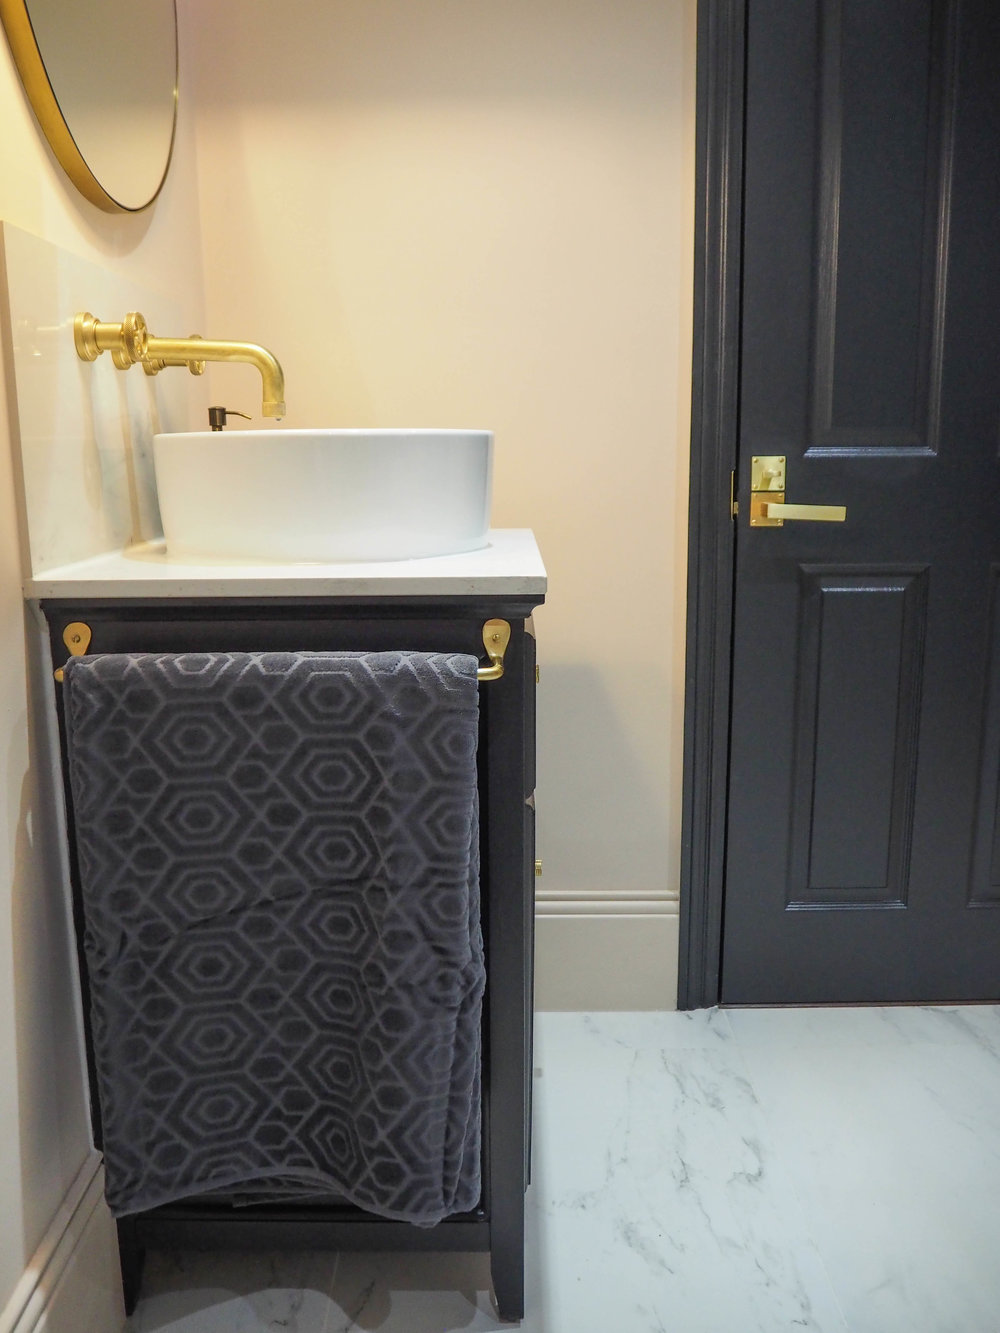 BATHROOM ACCESSORISING WITH SAINSBURY'S HOME